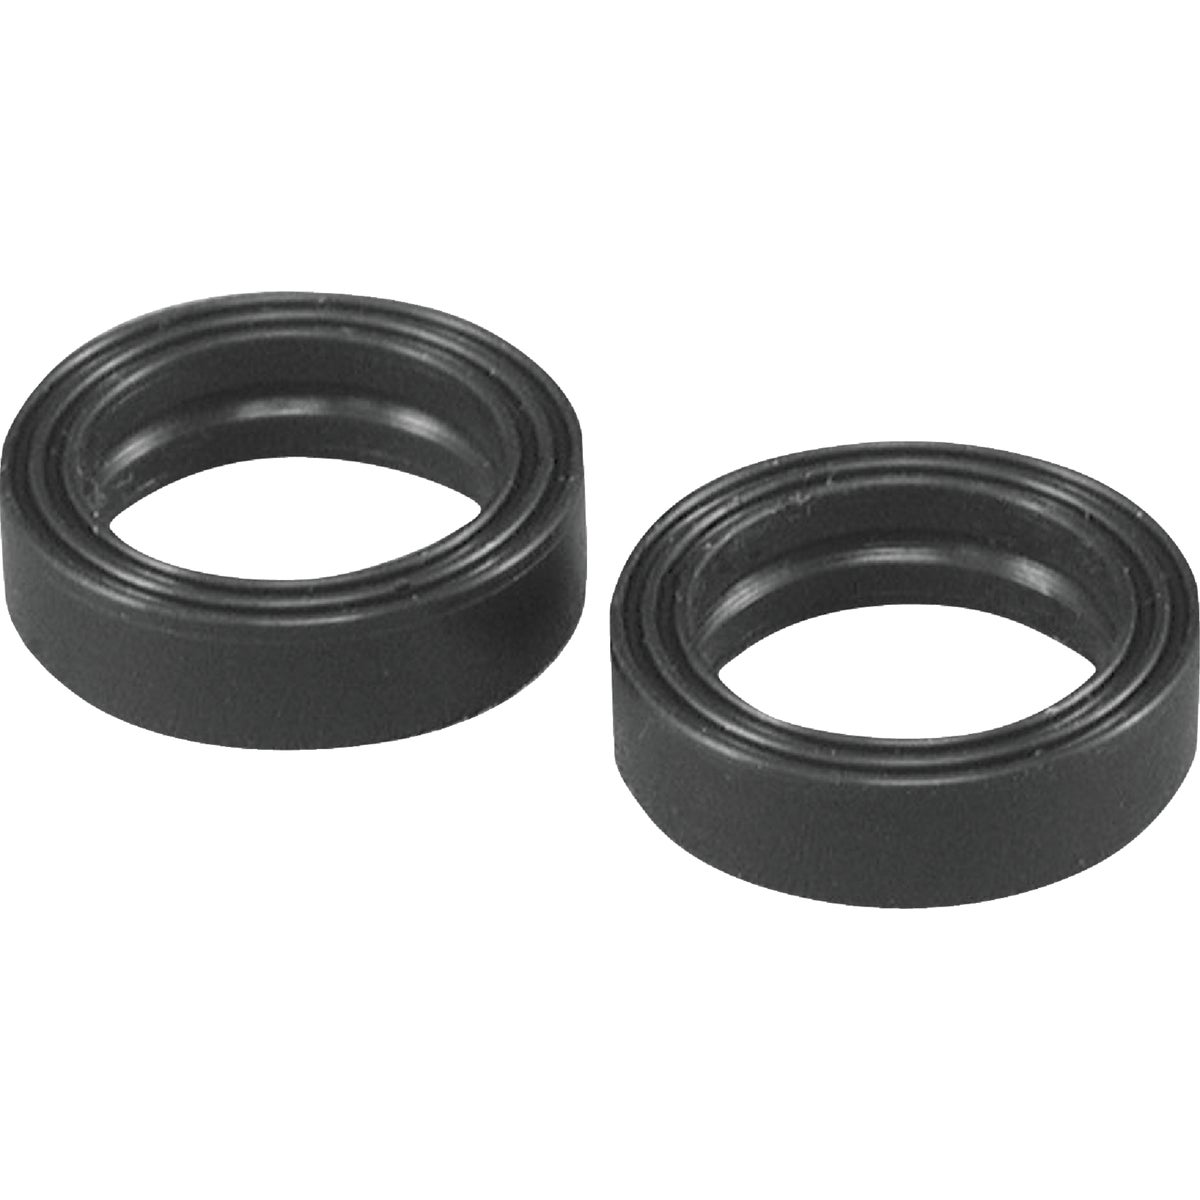 PR PF BOTTOM SEAL - 89045 by Danco Perfect Match